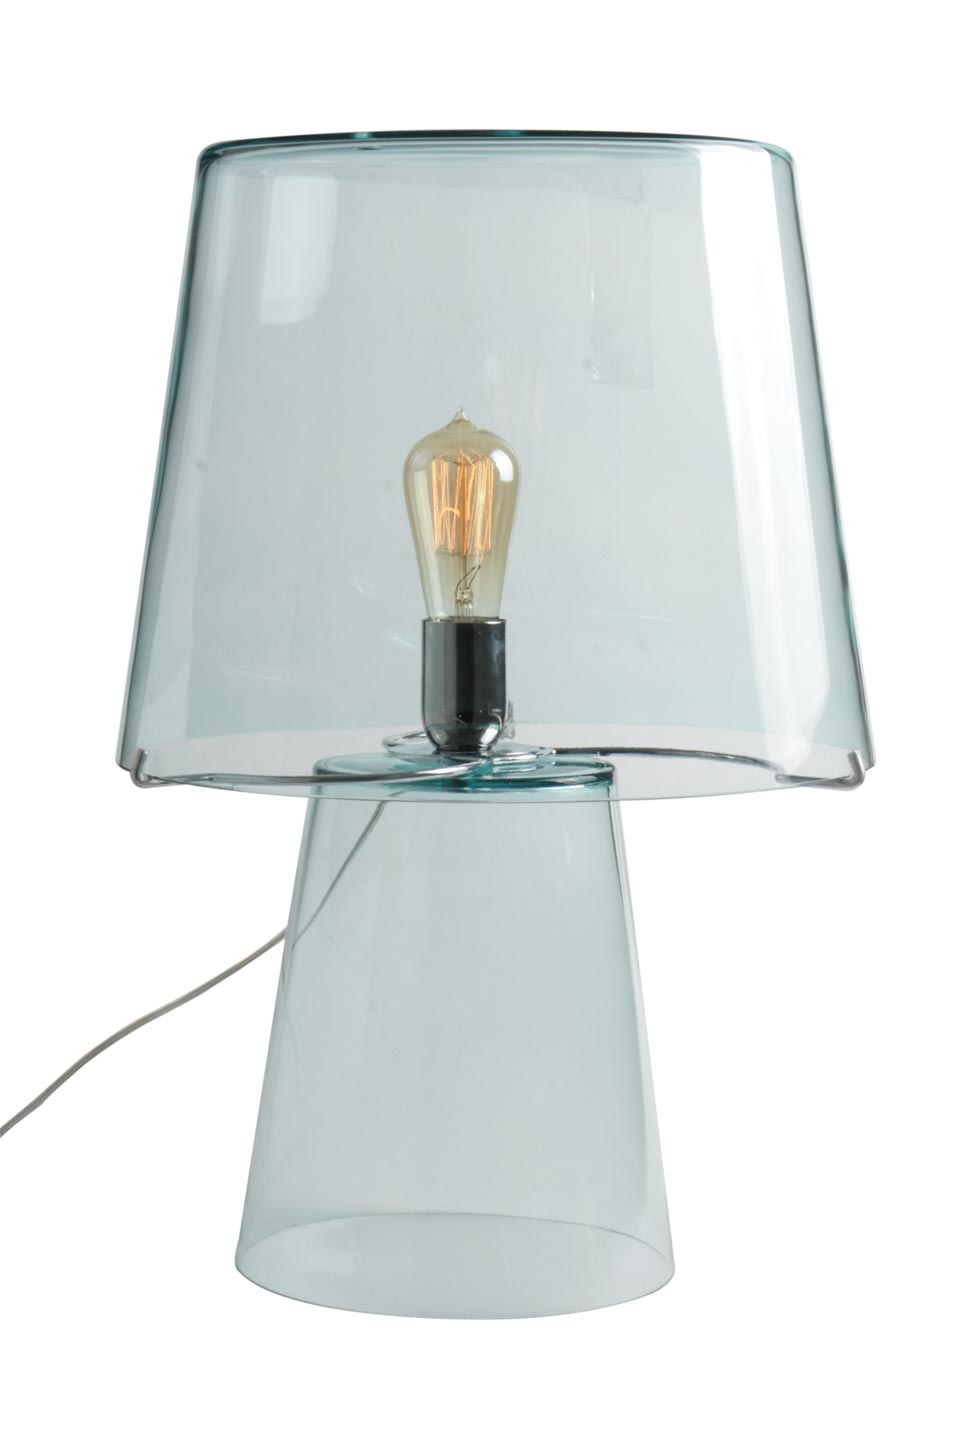 cylinder and lamp transparent cone table Glass foot shade Qdshtr